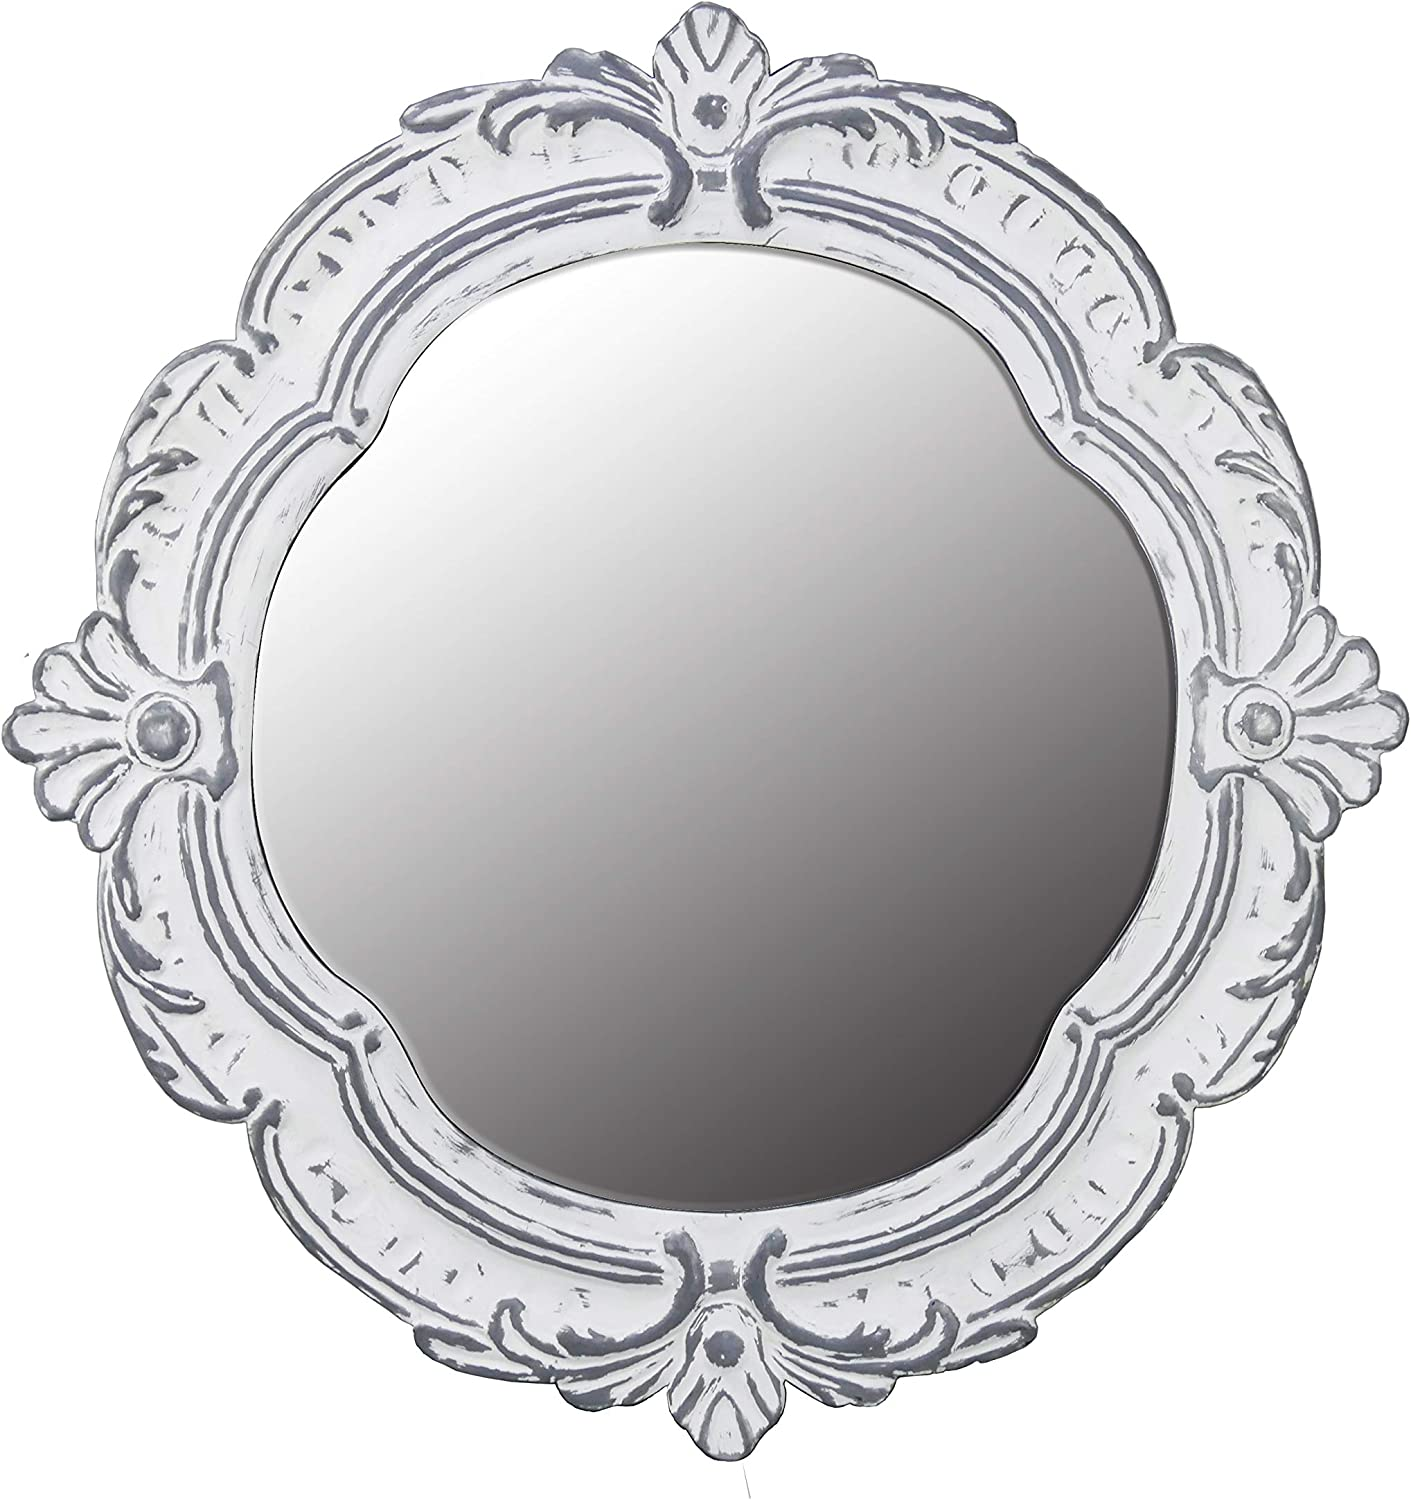 NIKKY HOME 26 Inch Decorative Metal Wall Mirror, White